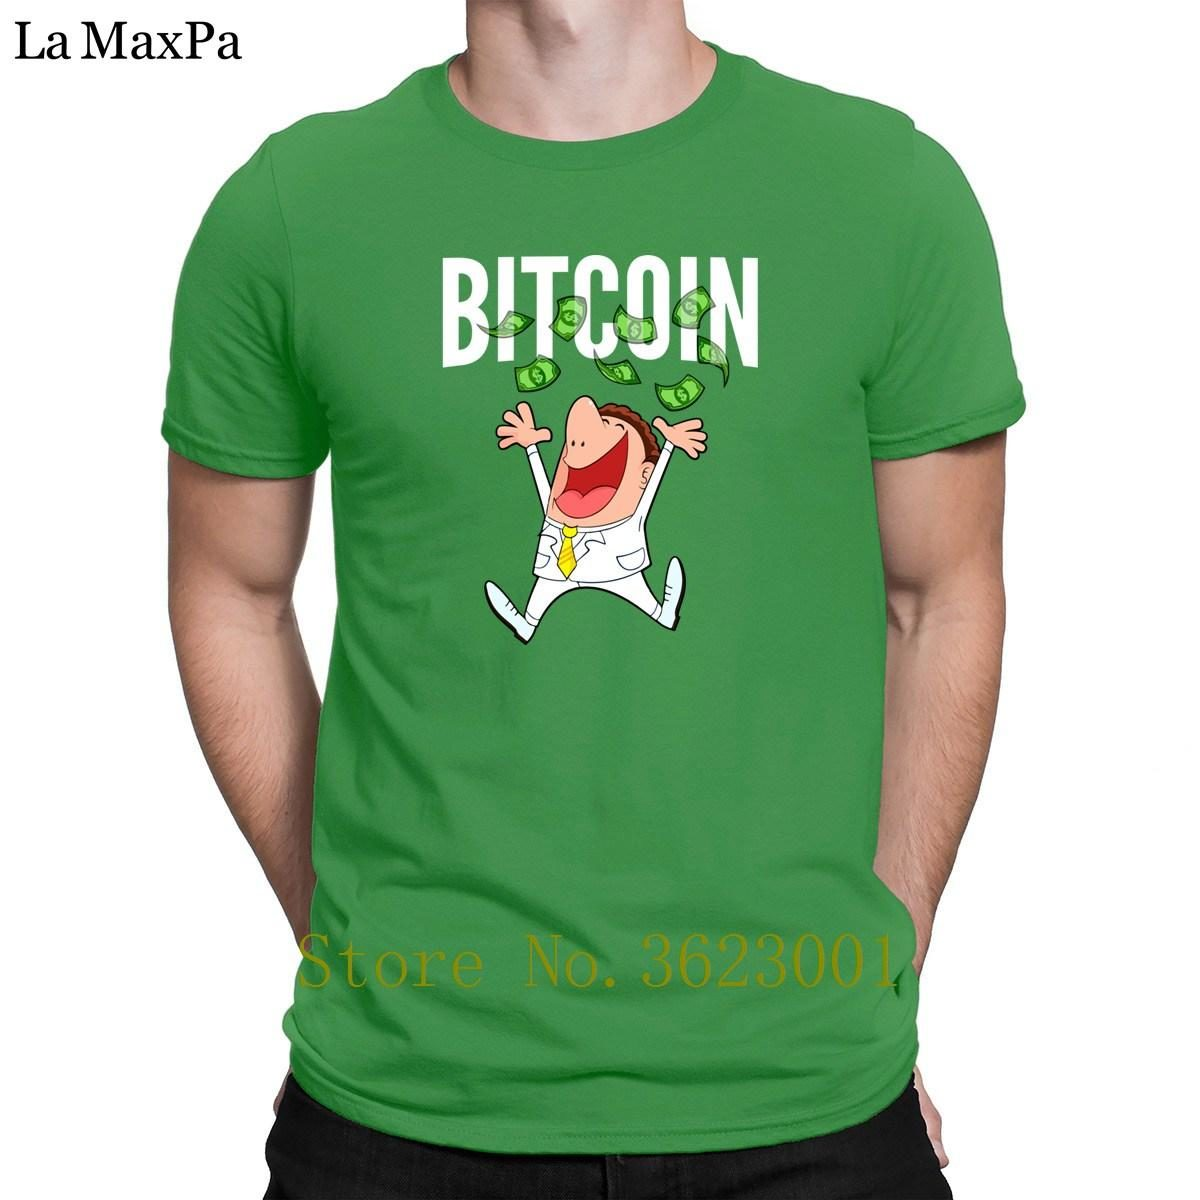 La plus authentique collection de tee-shirts Bitcoin en ligne